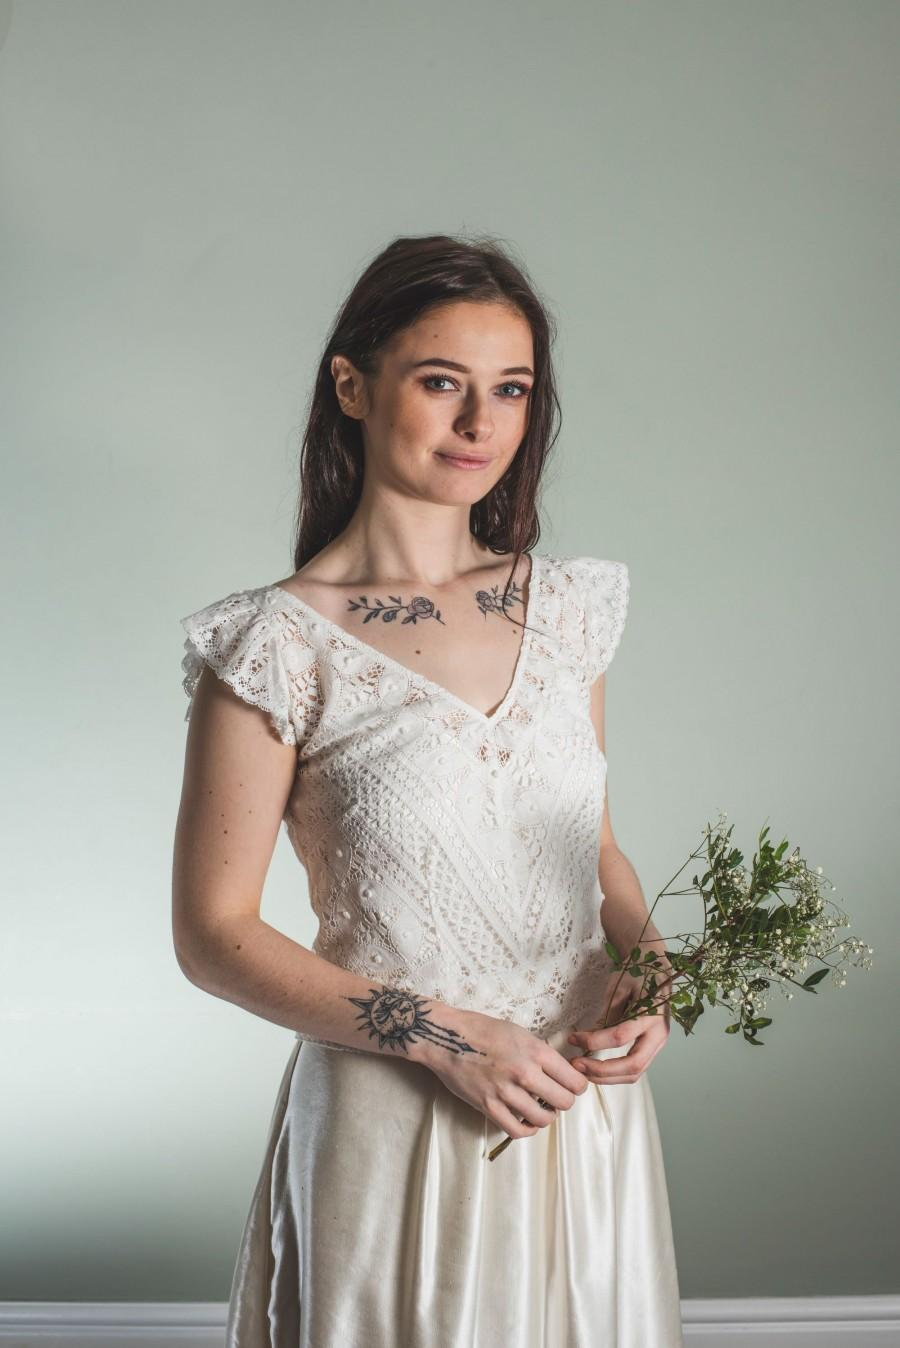 زفاف - v-neck lace bridal top, cotton lace button back top, v neck bridal top made in english cotton lace, bridal top, off white lace top uk